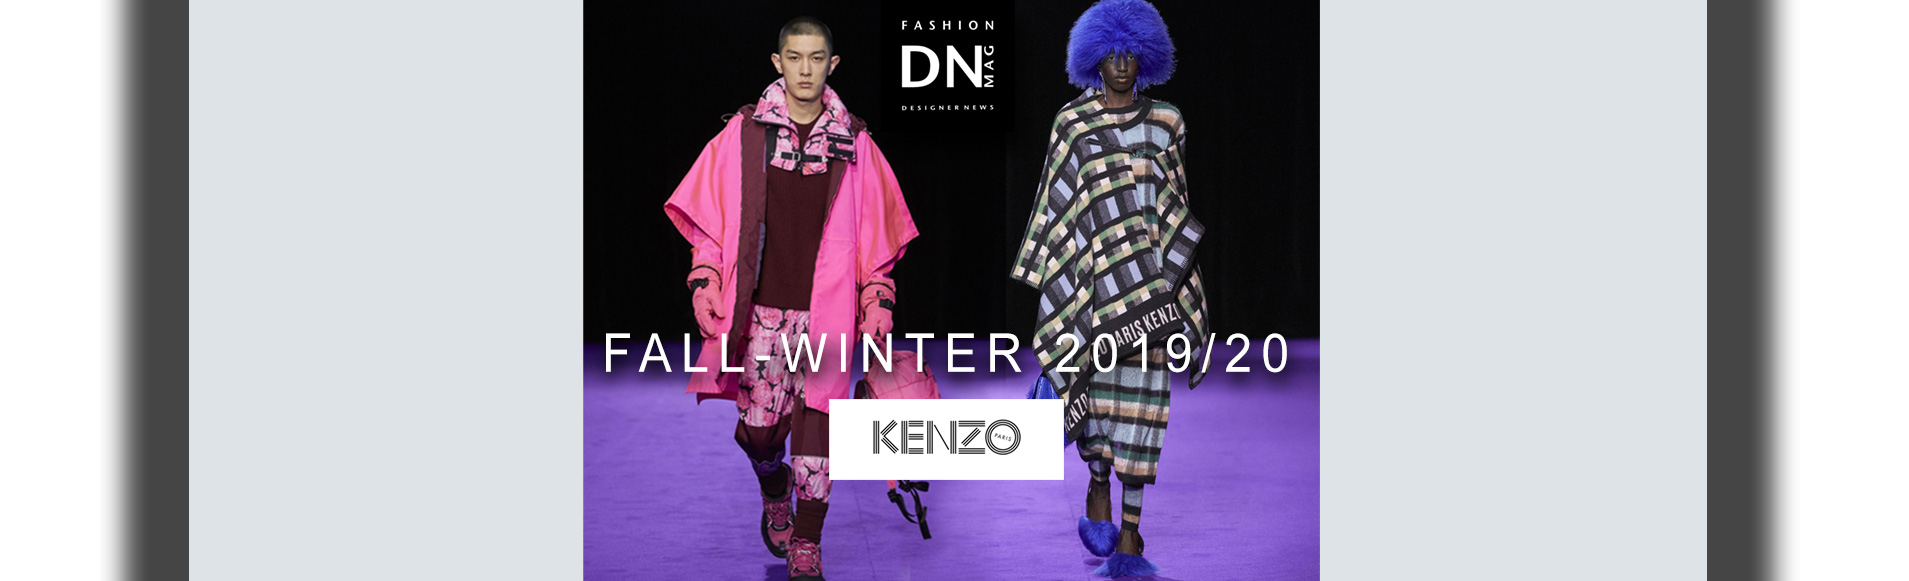 DN-MAG-FR-Kenzo-FW2019-20-Men-s-Fall-collection-Paris